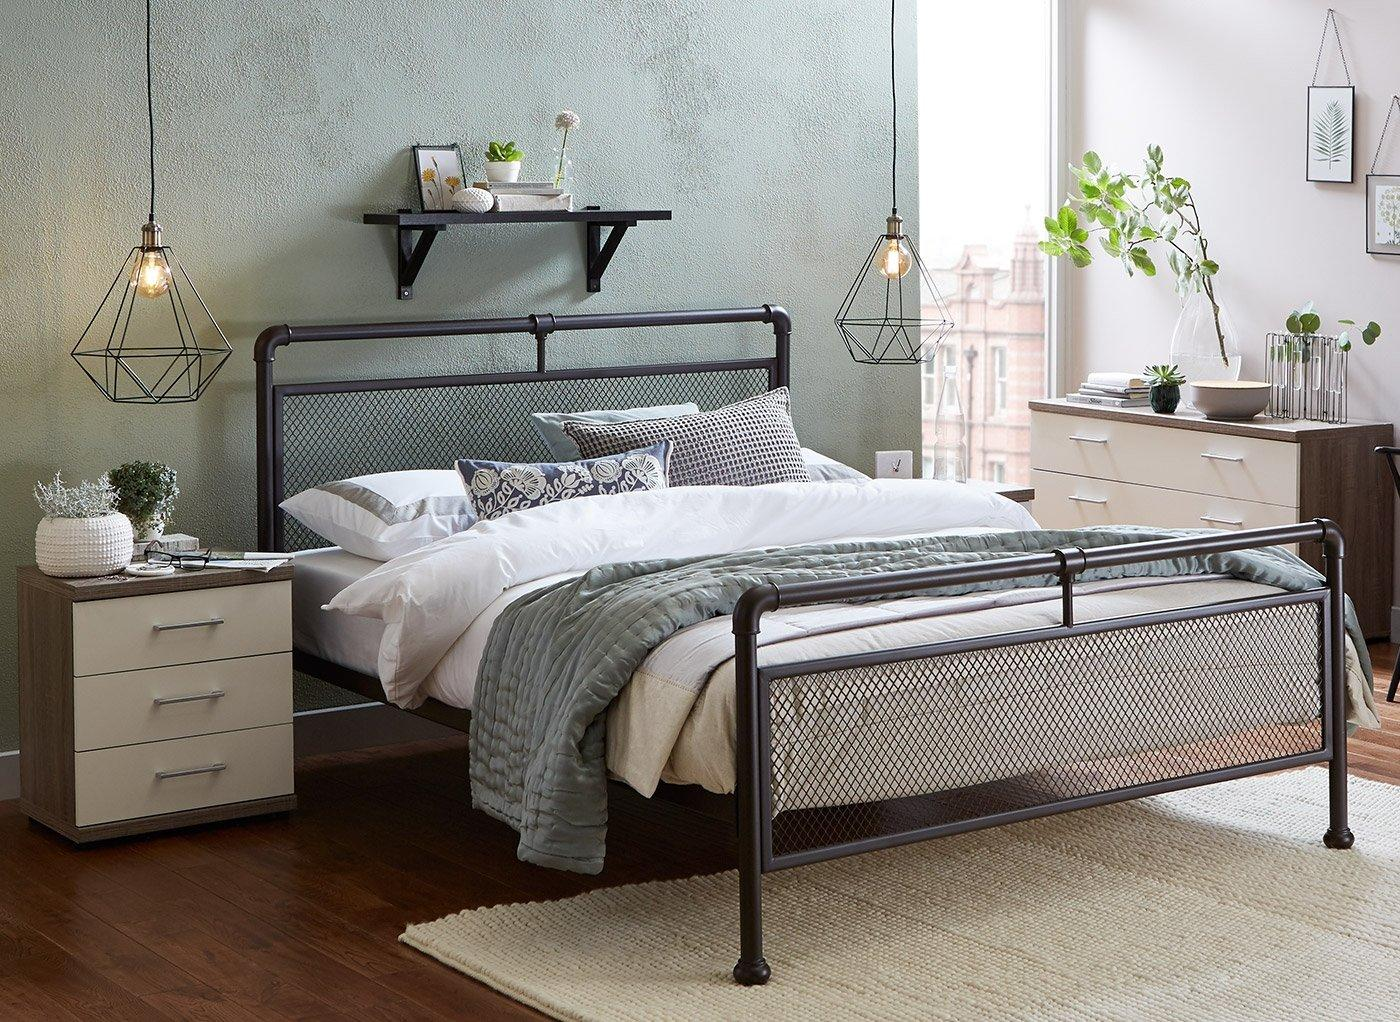 Ruskin Dark Metal Bed Frame 4'6 Double BROWN